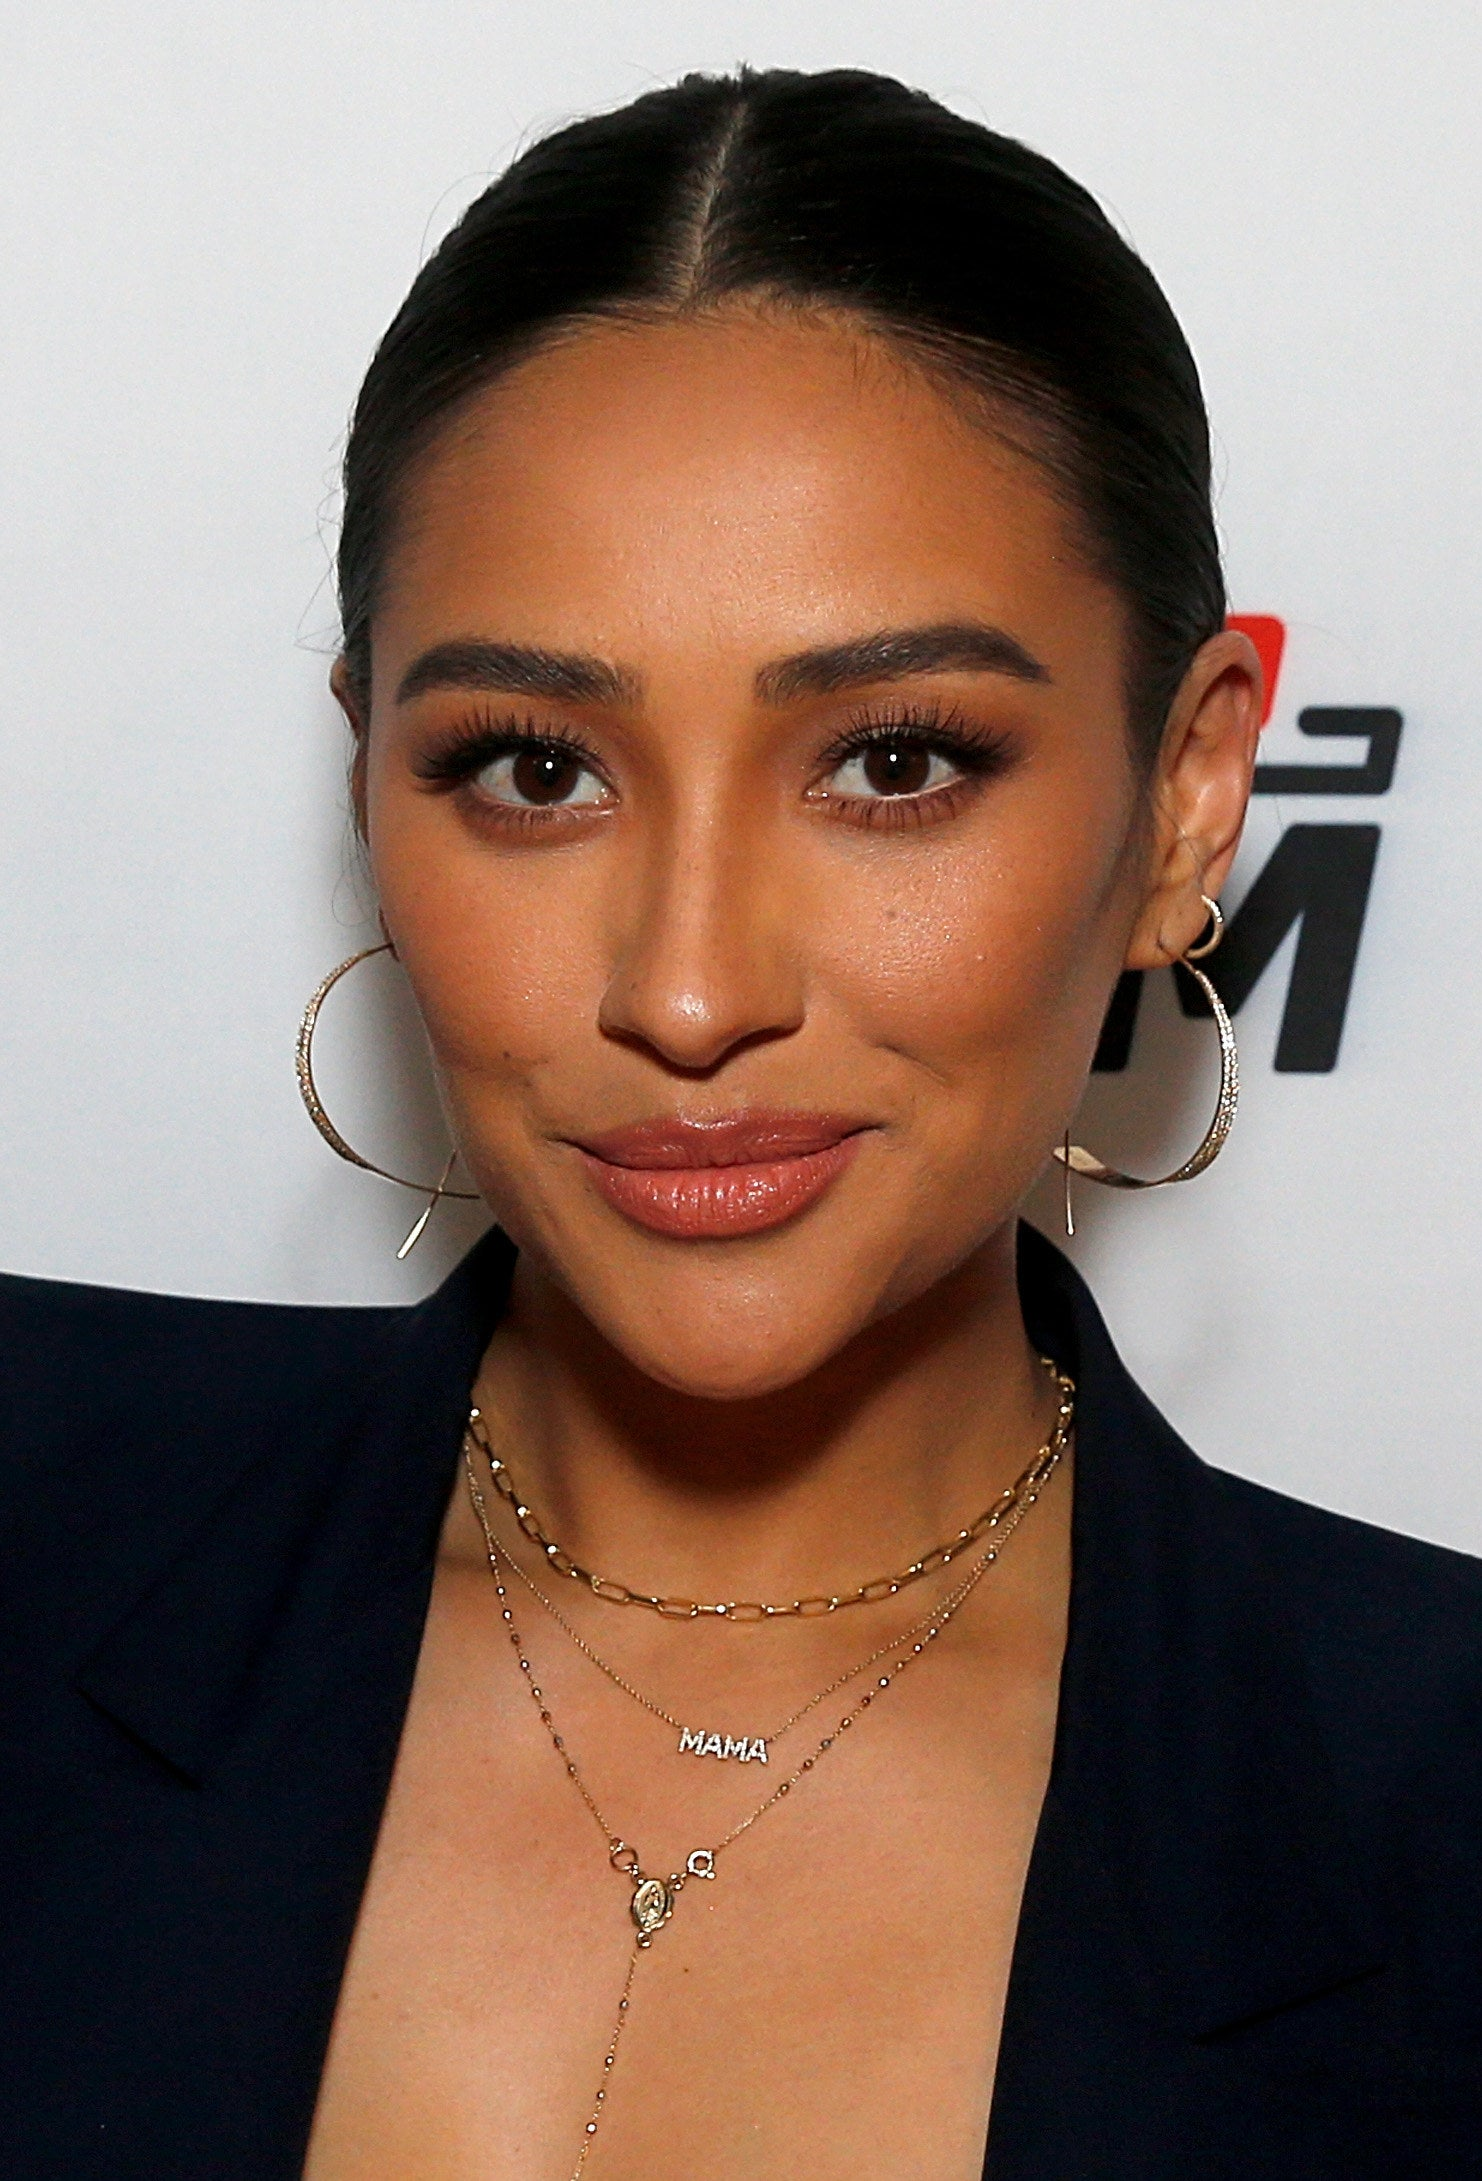 Shay Mitchell with her hair slicked back into a bun, wearing a blazer as she smiles at the camera